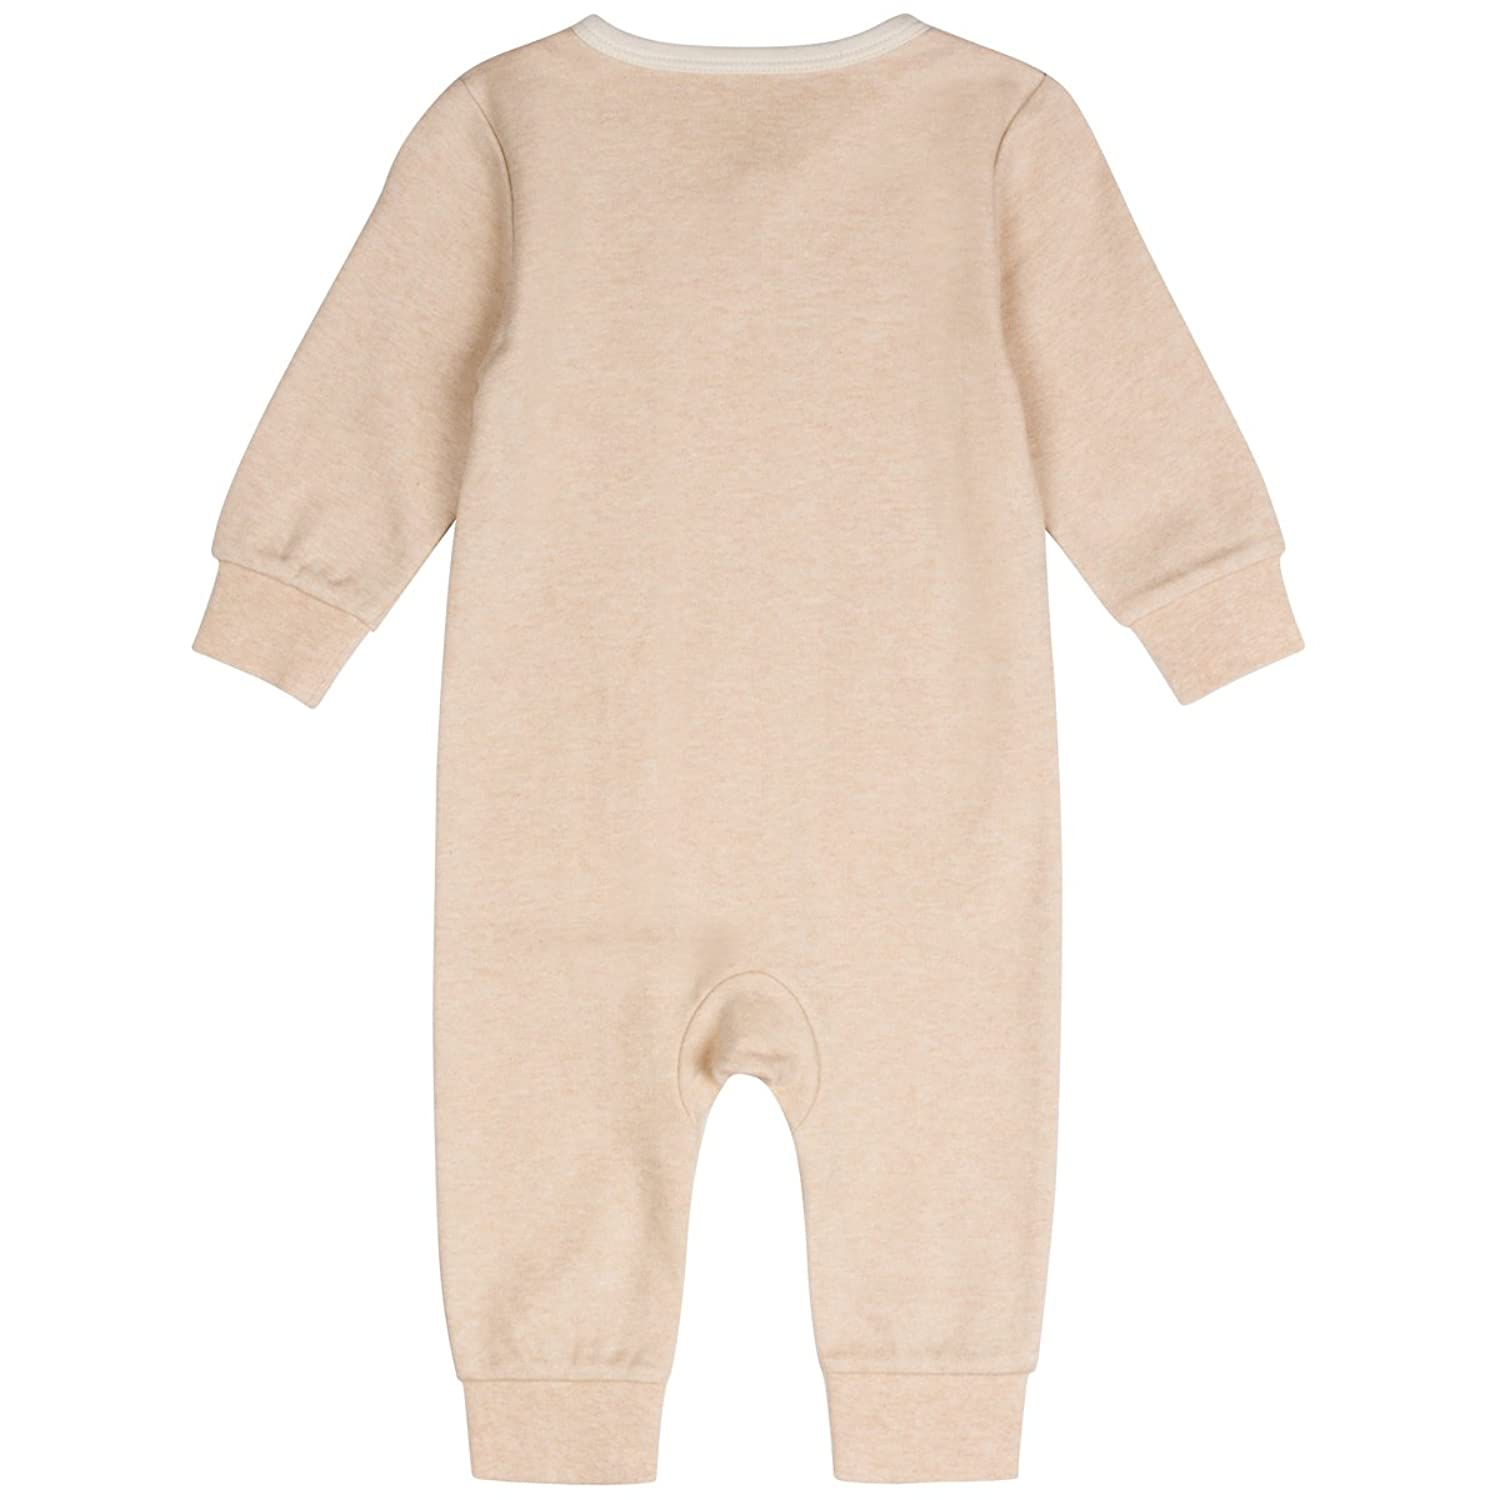 Amazon Niteo Baby Organic Cotton Snap Front Coverall Clothing